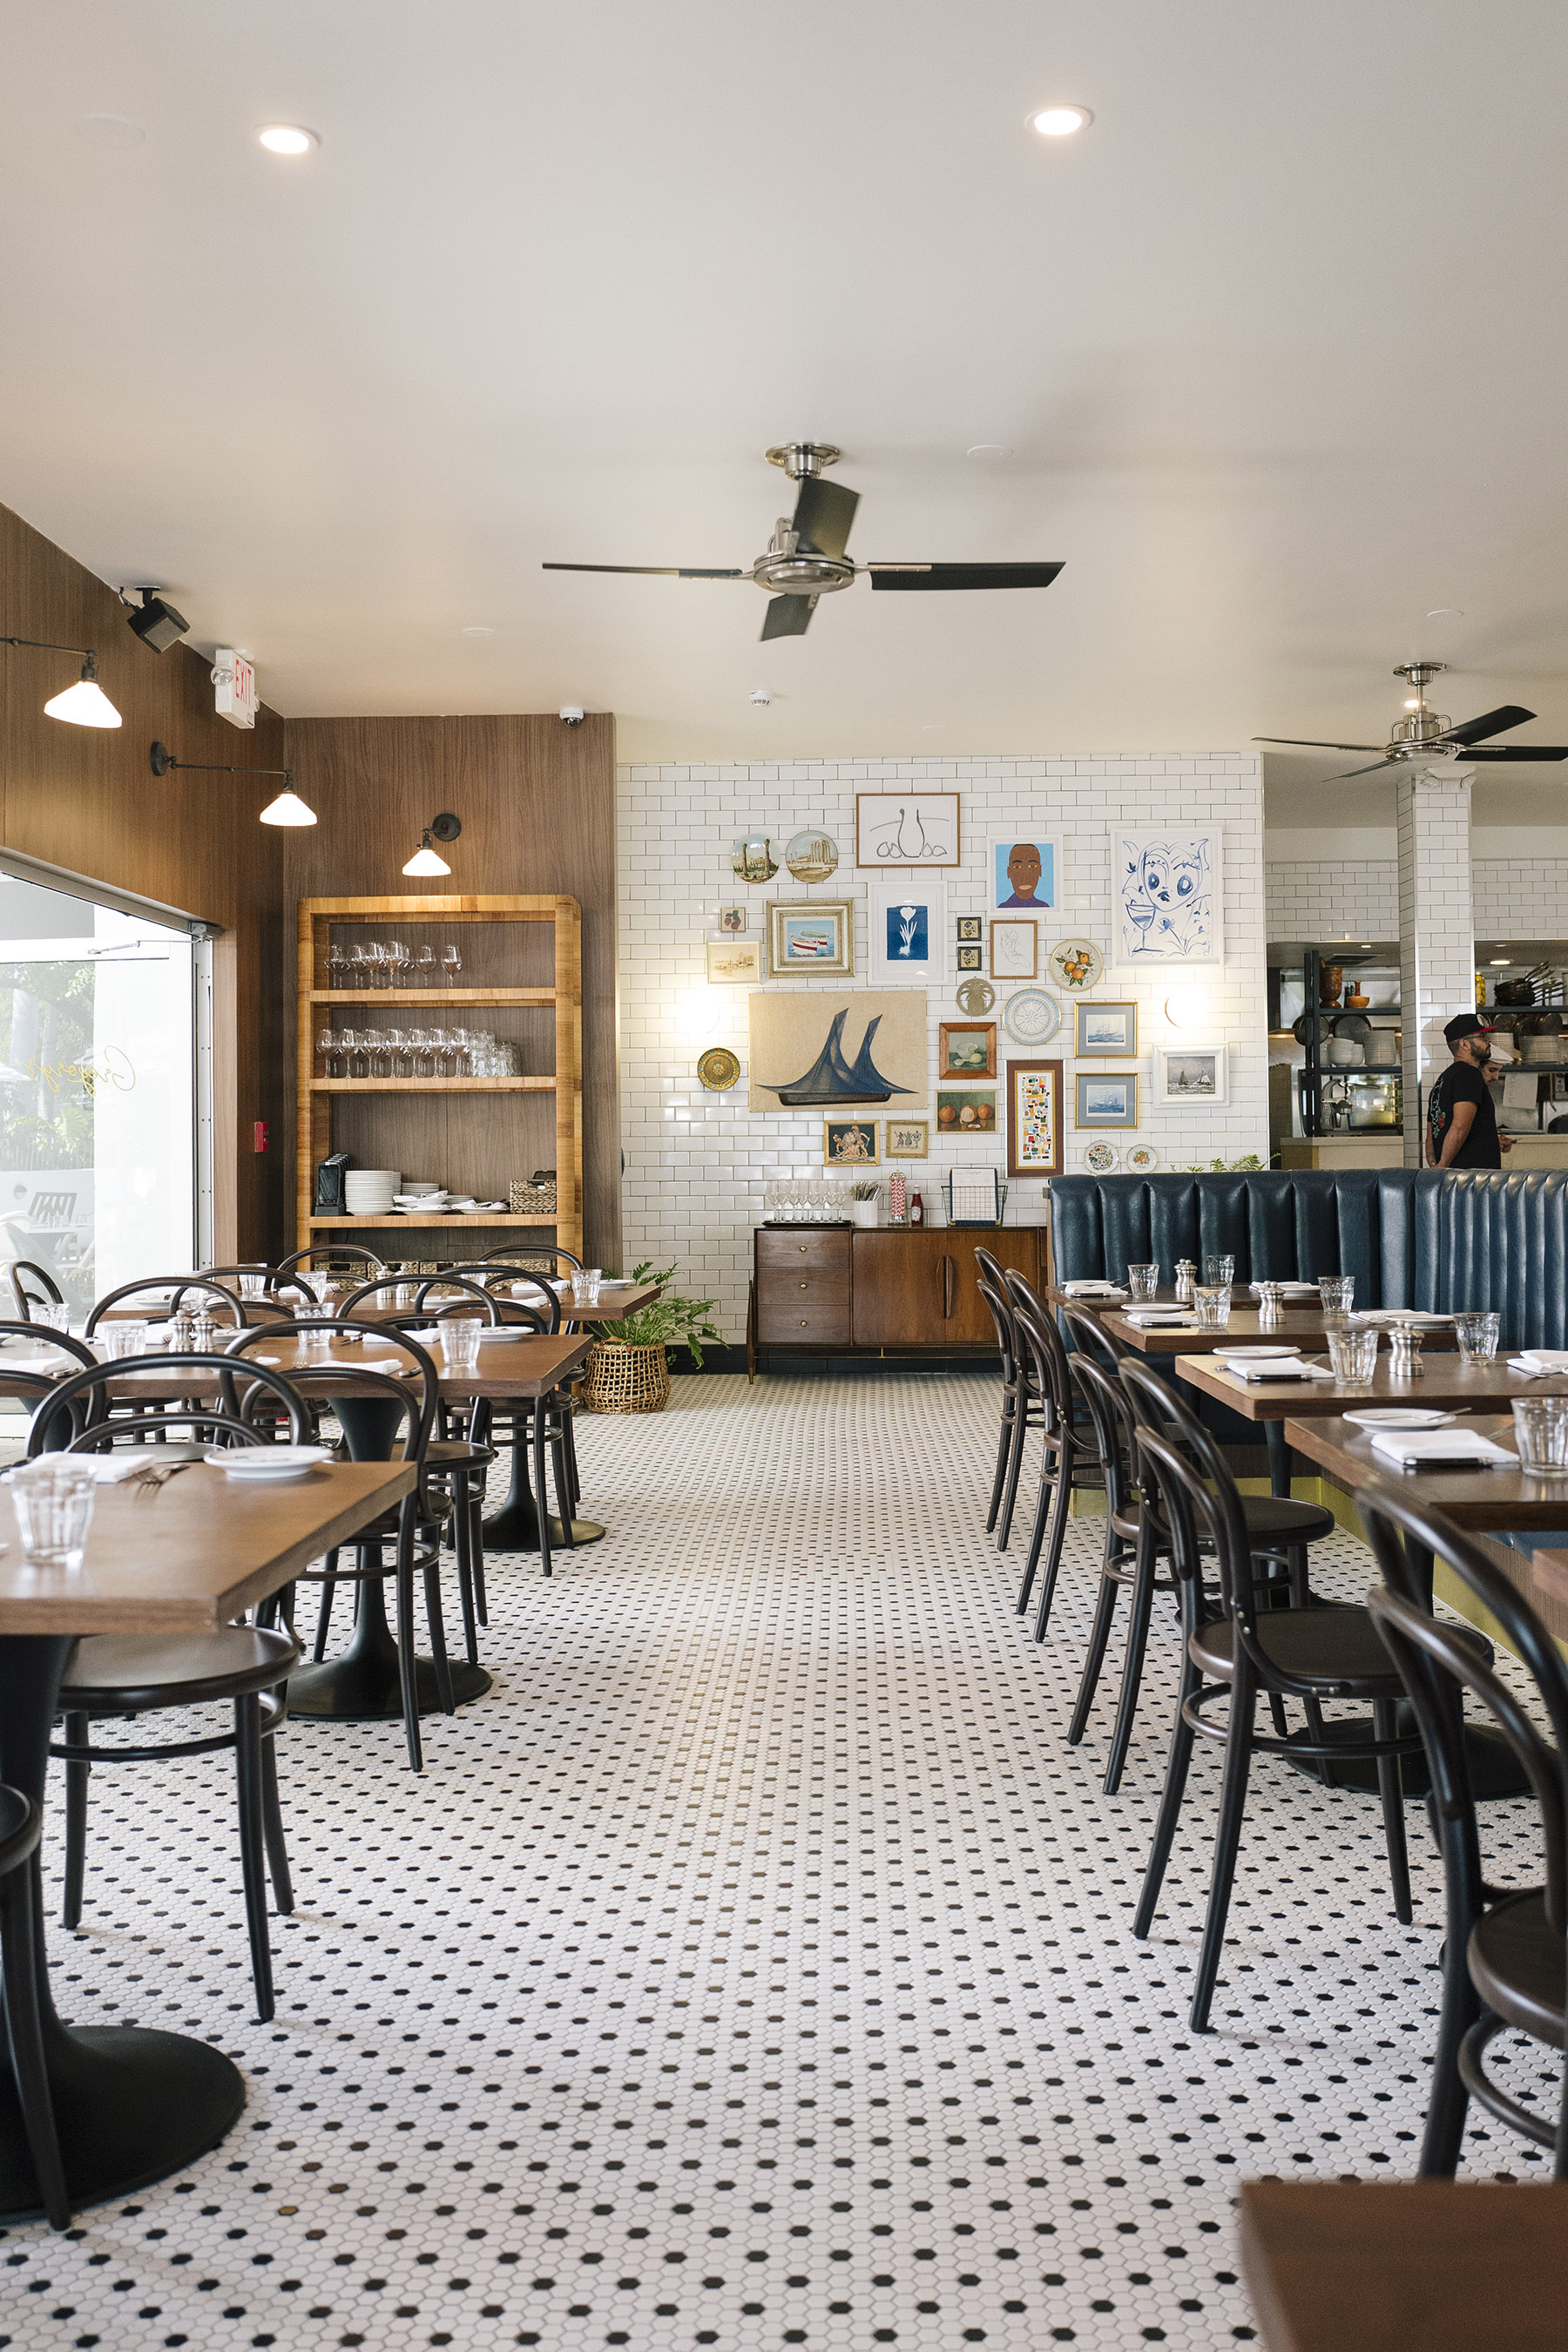 Take a Look Around the New All-Day American Eatery by the Mandolin Team